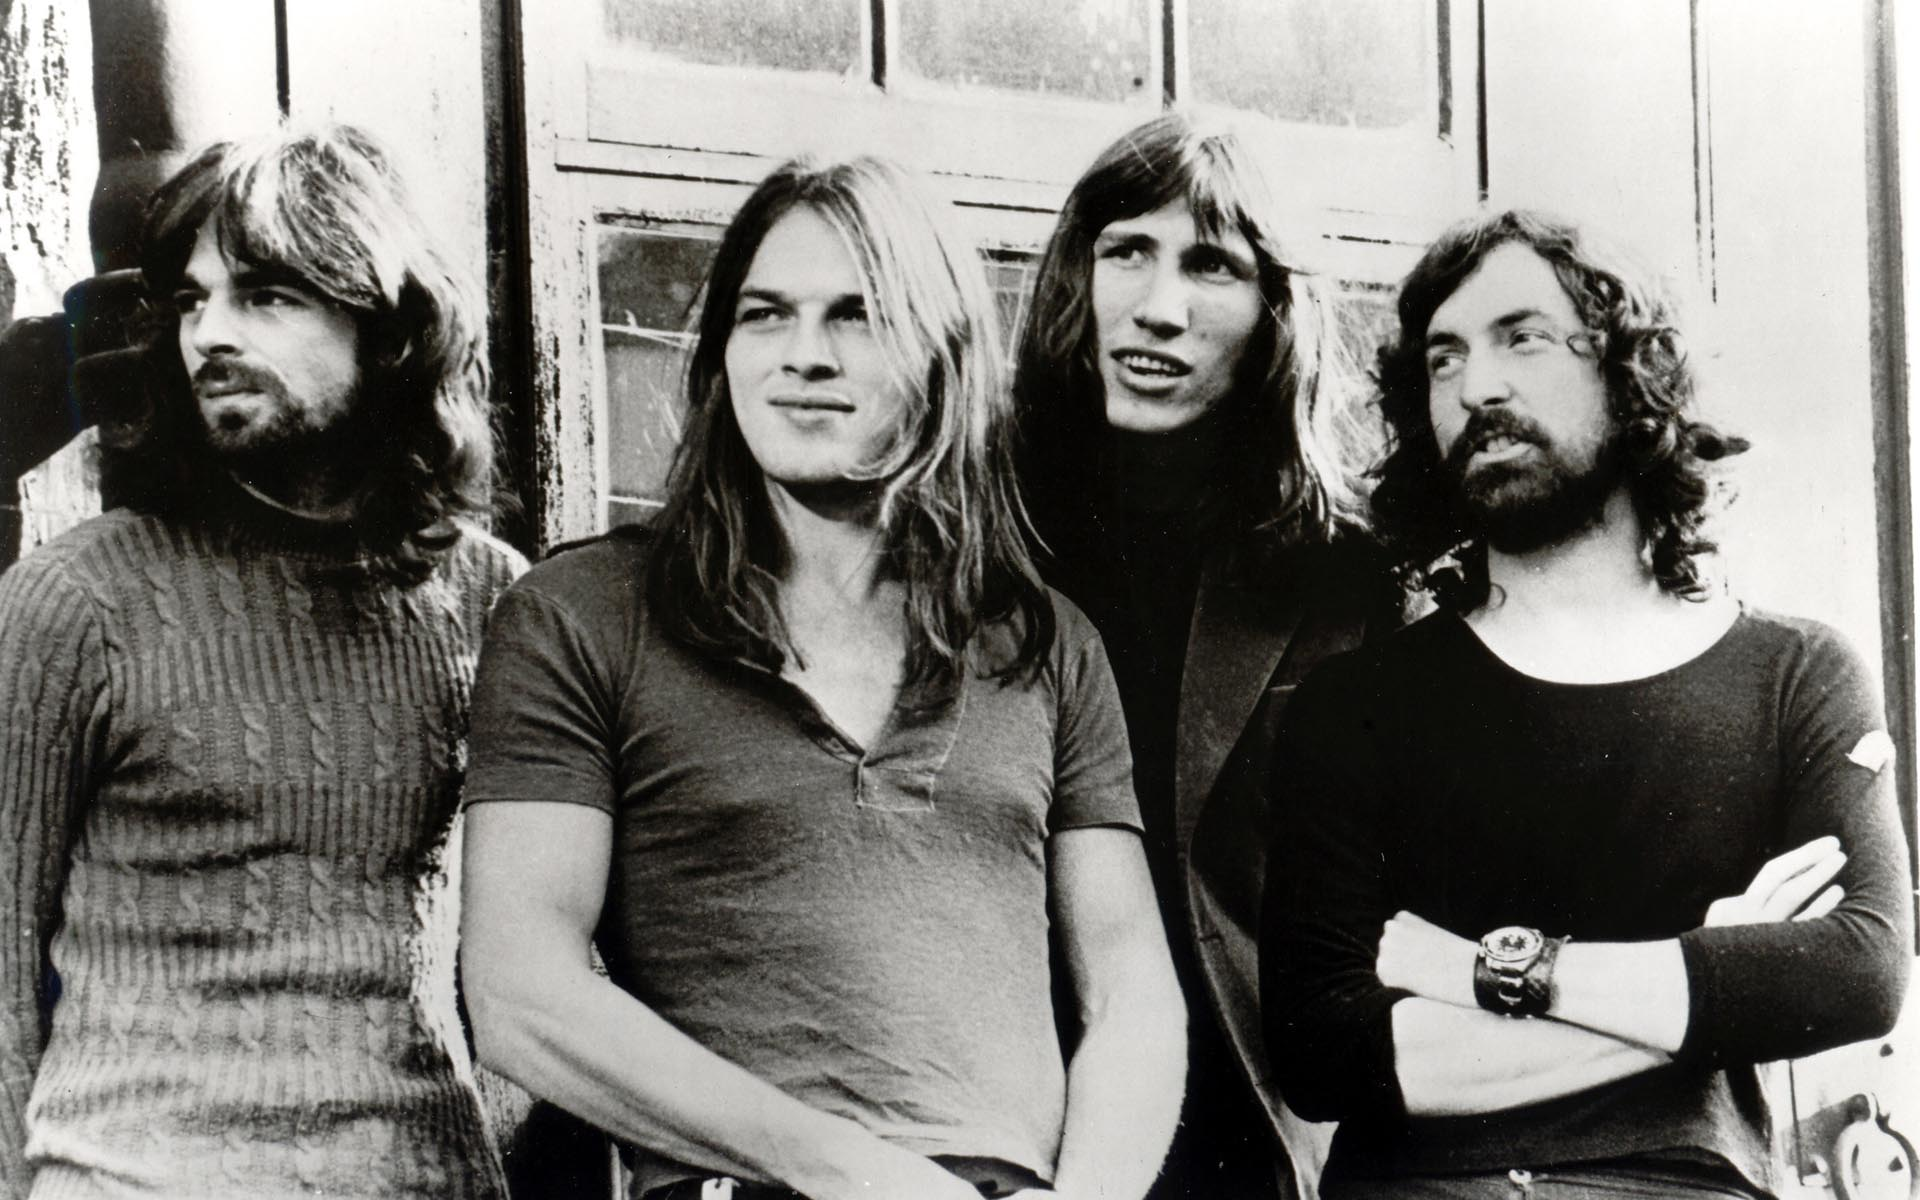 (l-r) Rick Wright, David Gilmour, Roger Waters, Nick Mason Pink Floyd, 1970s This is a PR photo. WENN does not claim any Copyright or License in the attached material. Fees charged by WENN are for WENN's services only, and do not, nor are they intended to, convey to the user any ownership of Copyright or License in the material. By publishing this material, the user expressly agrees to indemnify and to hold WENN harmless from any claims, demands, or causes of action arising out of or connected in any way with user's publication of the material. Supplied by WENN